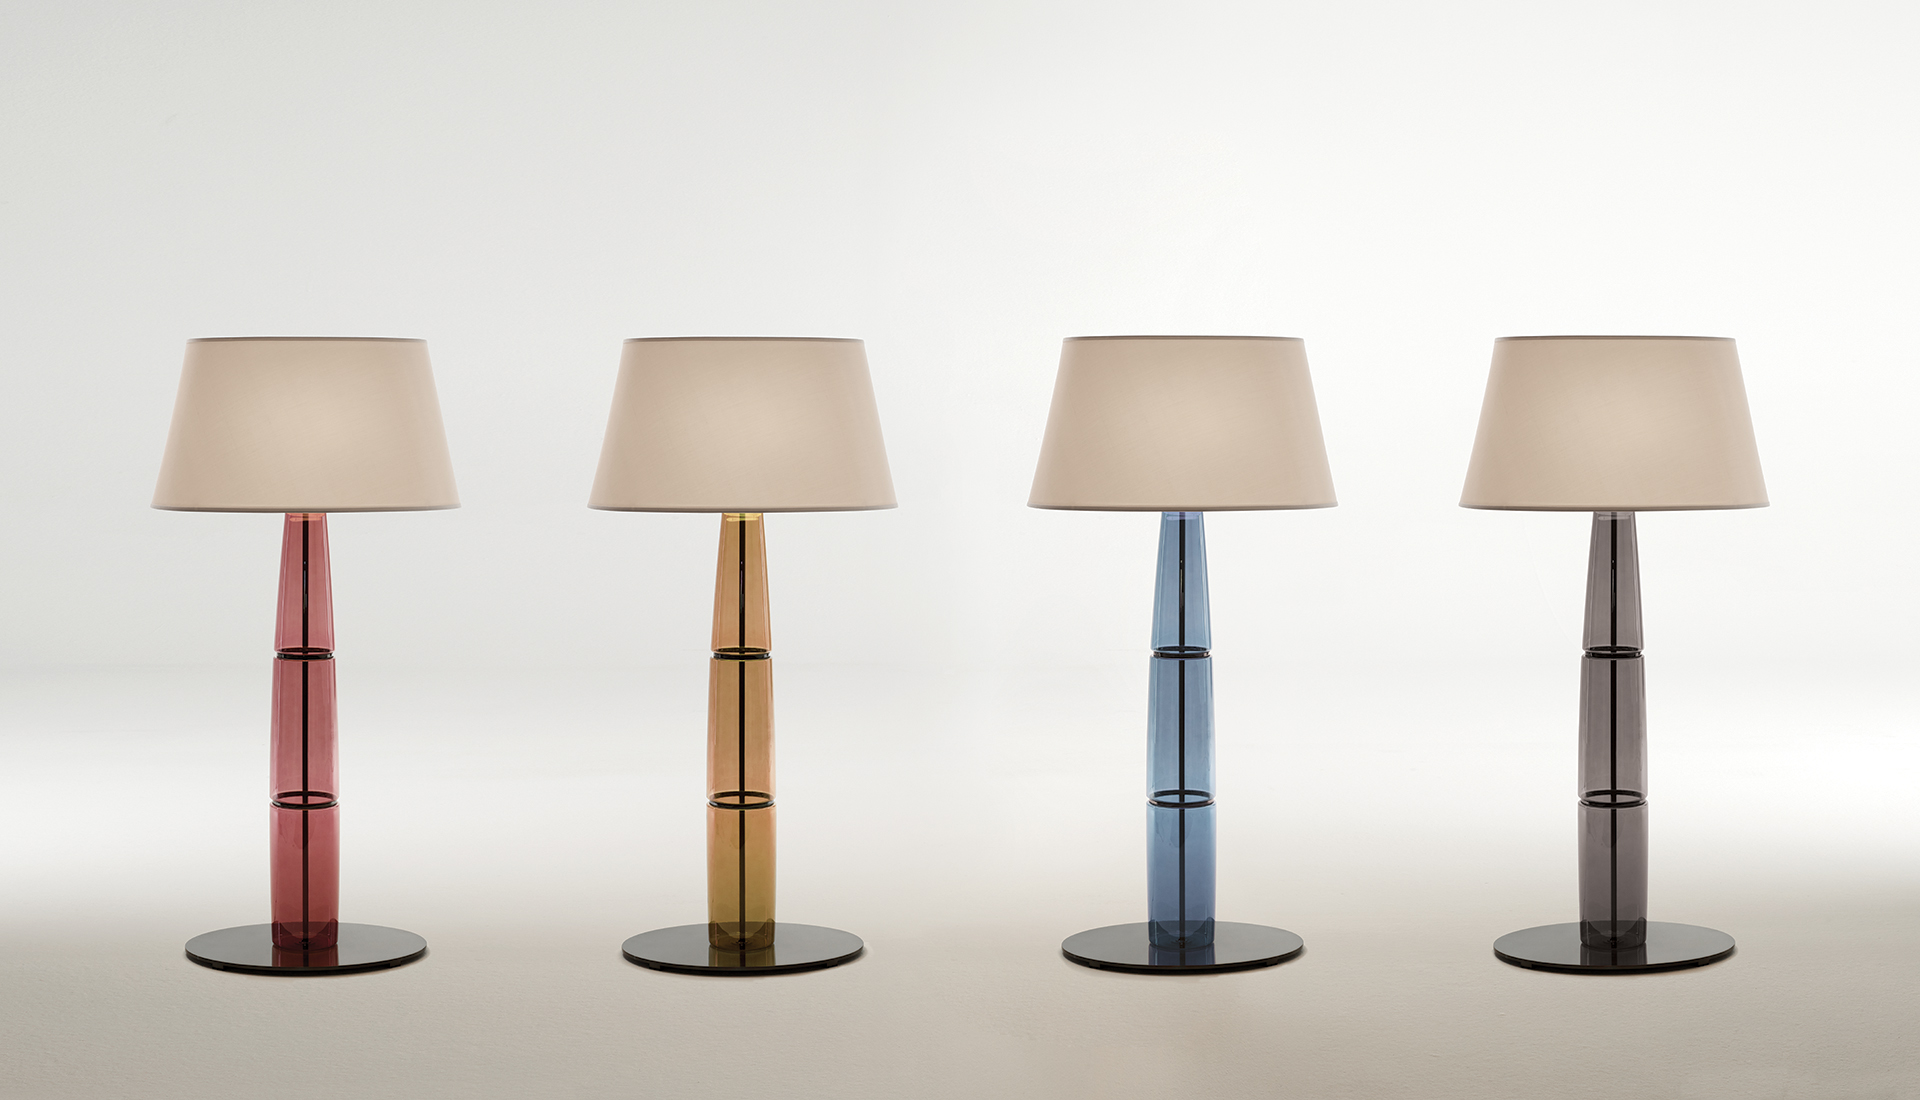 D'ora floor lamp The Atelier of Beauty, 2019 Promemoria collection presented during the Milan Design Week | Promemoria